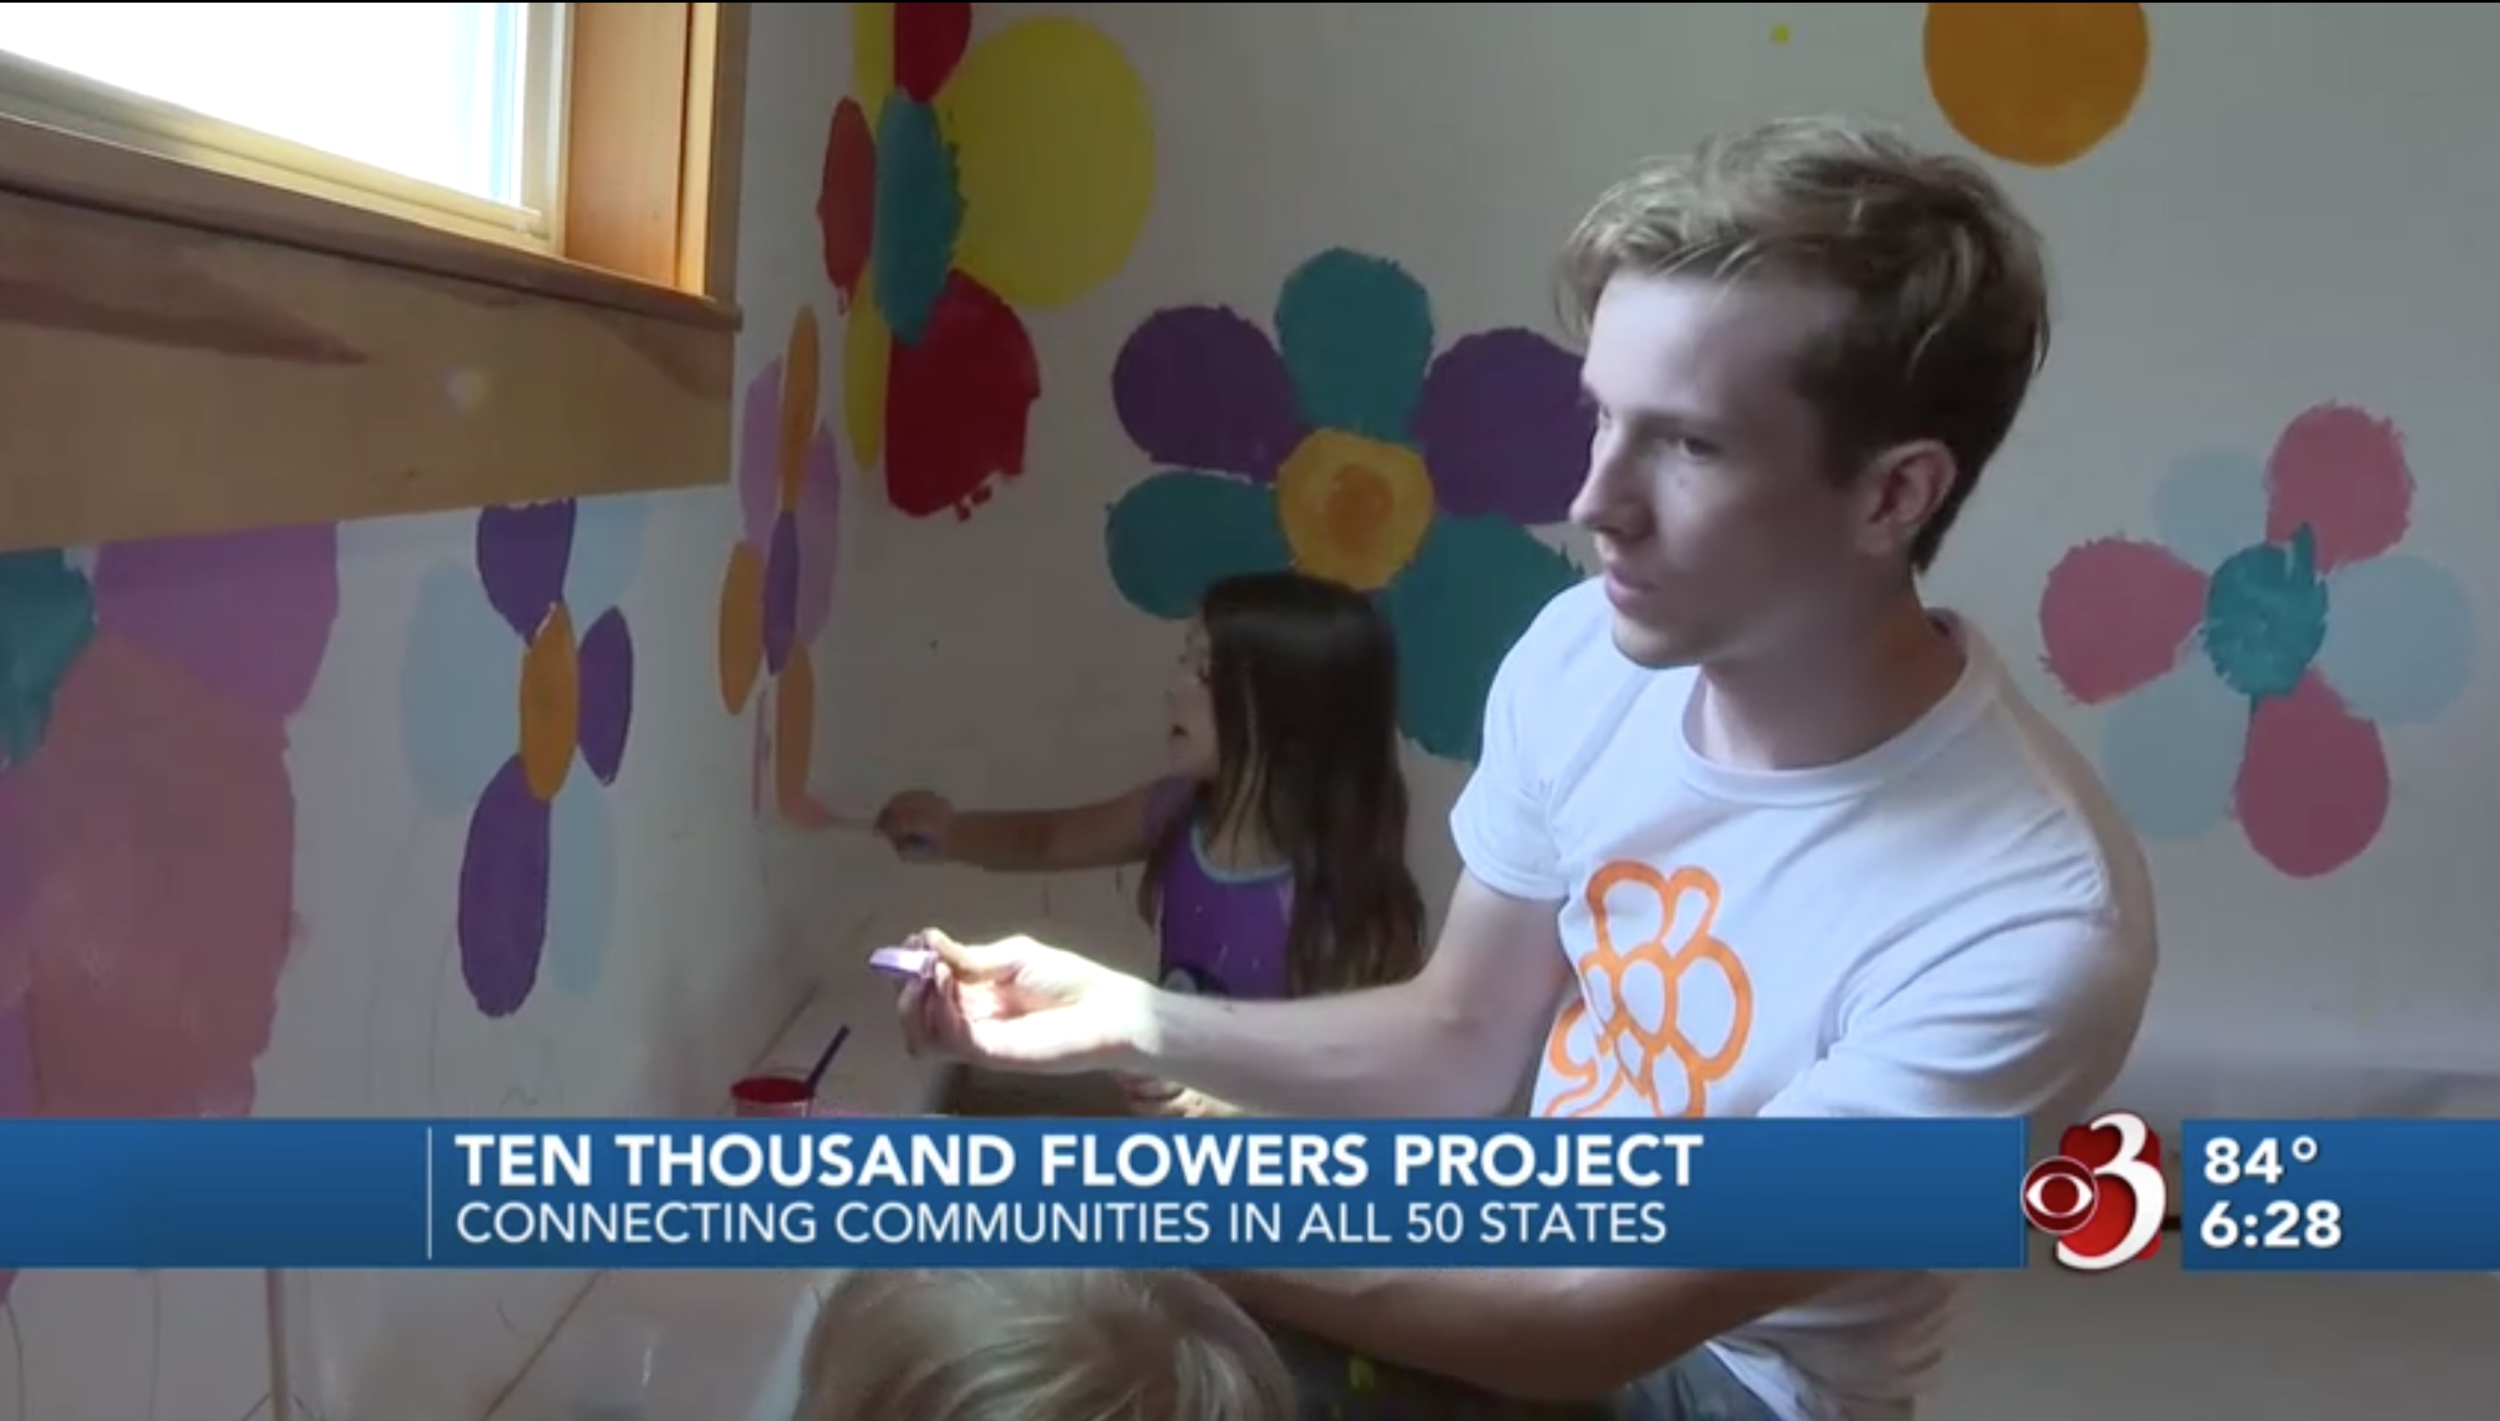 WCAX CBS 3 - There's a lot of negativity in the news these days, but there's also a lot of people out there spreading good, including one project that stopped in the Upper Valley this week.Nalah Cornish is a soft-spoken five-year-old, and she is a really good painter…